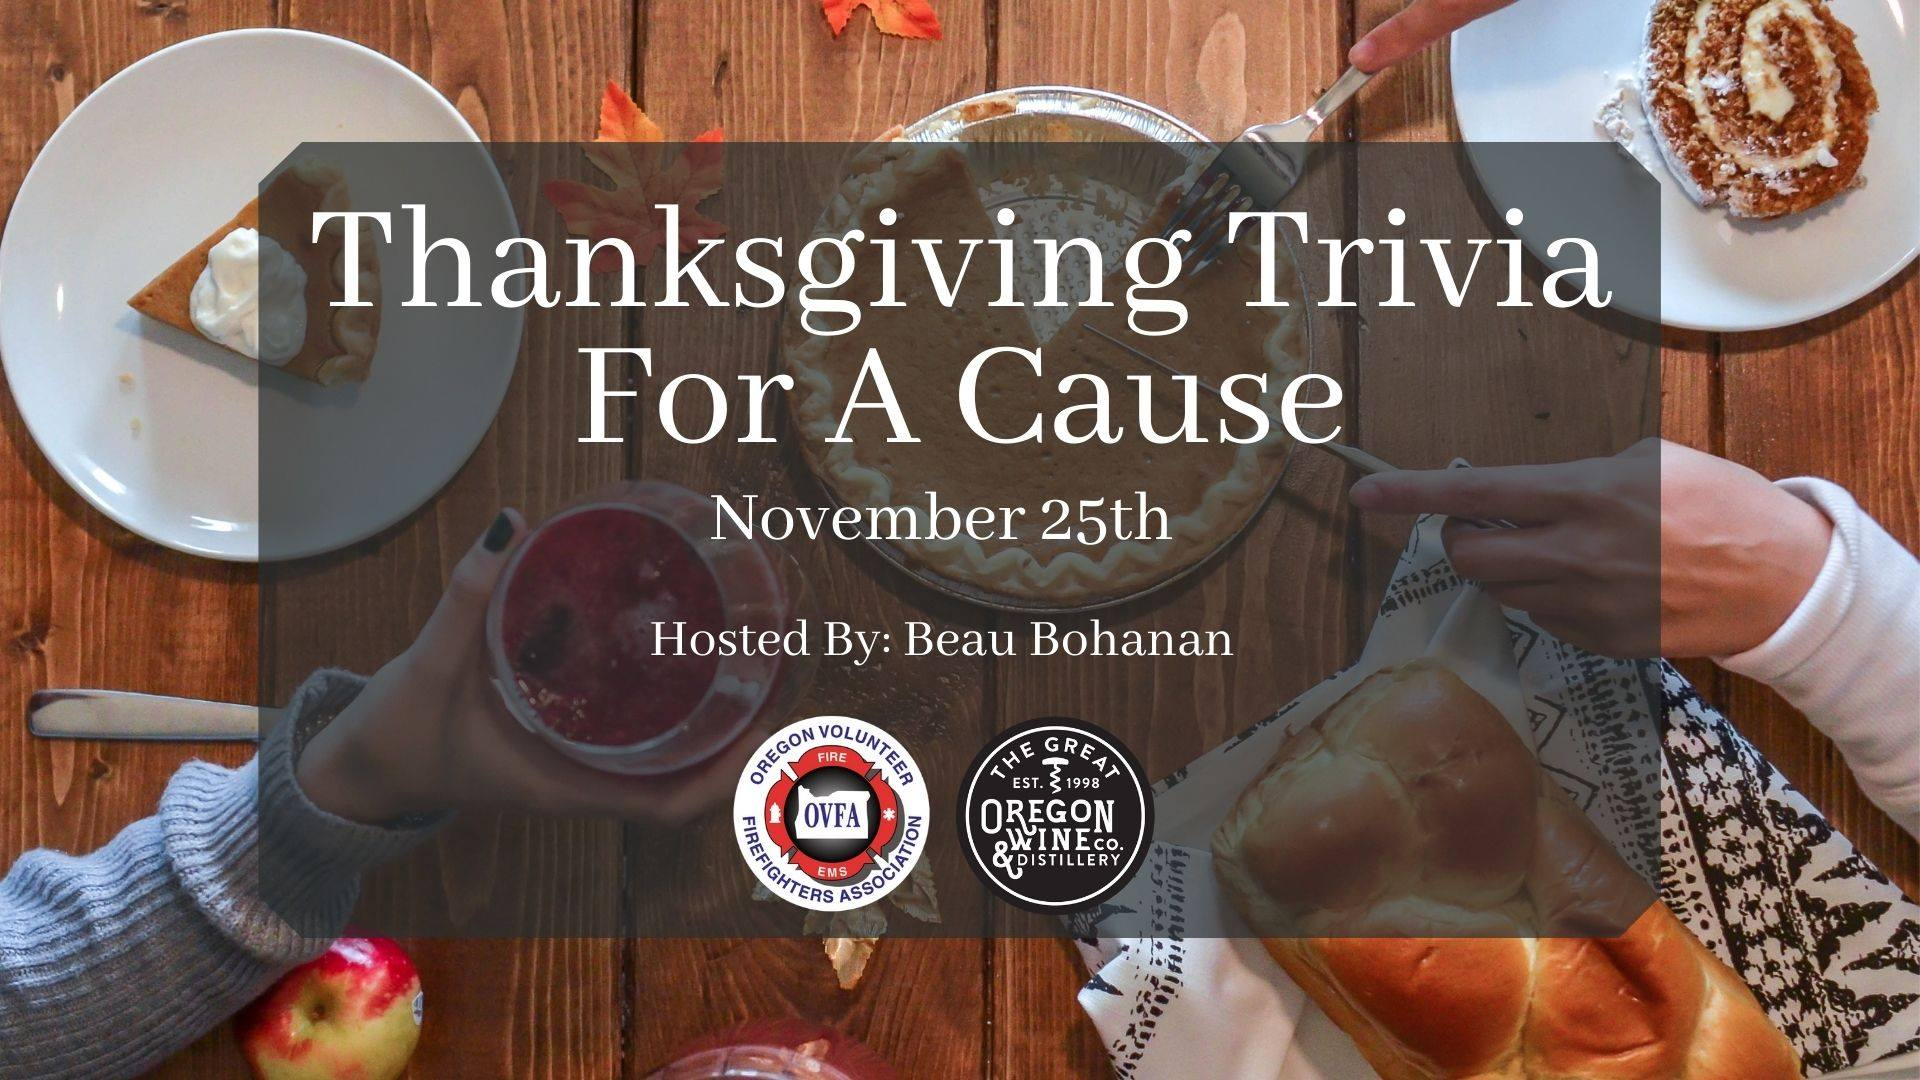 Trivia Pic - Thanksgiving Trivia for a Cause at The Great Oregon Wine Company